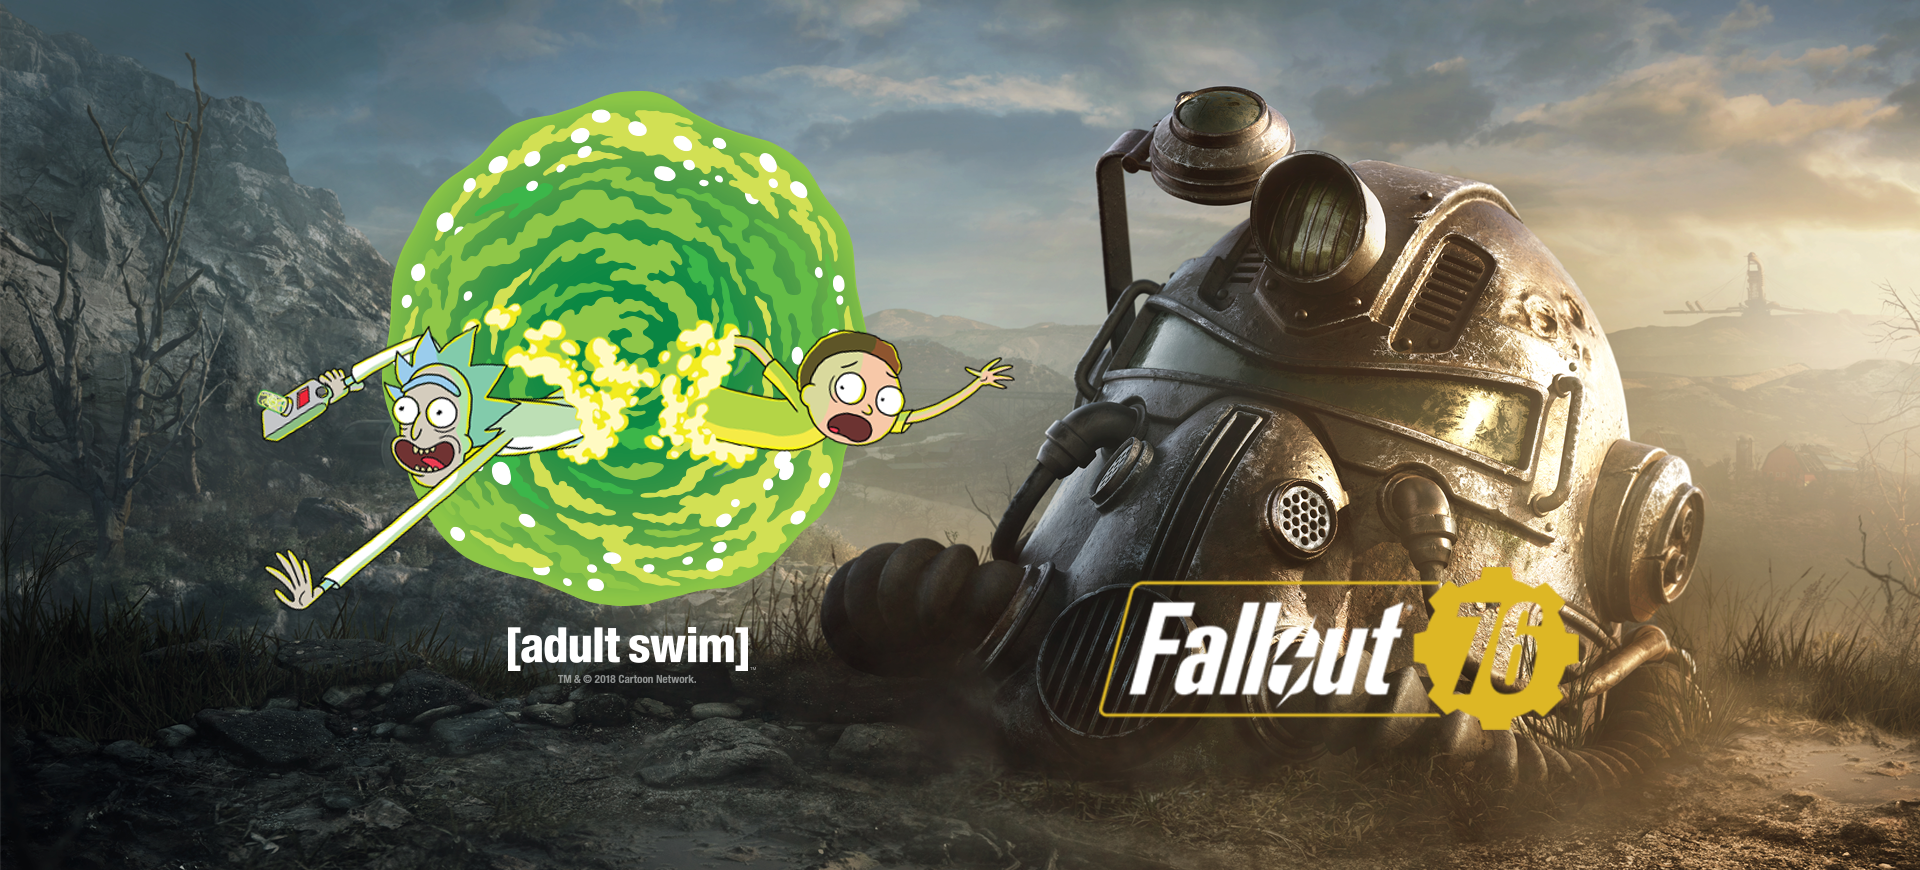 Fallout76_LargeHero_Rick_Morty